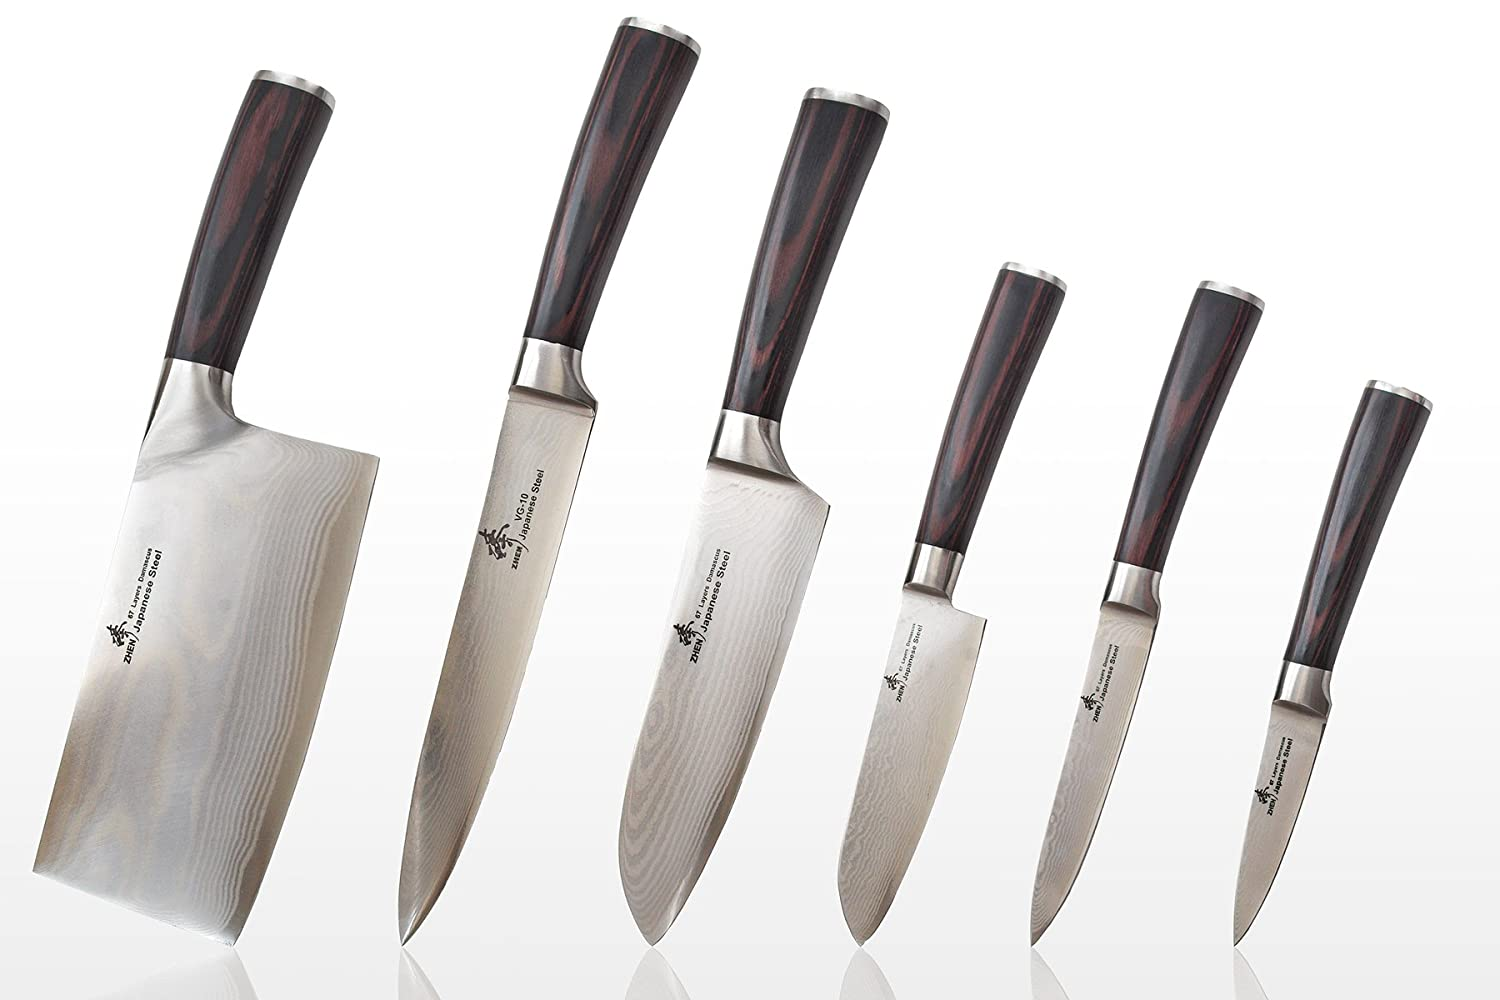 Perfect Amazon.com: Zhen Japanese Damascus VG 10 Knife Set, 6 Piece: Kitchen U0026  Dining